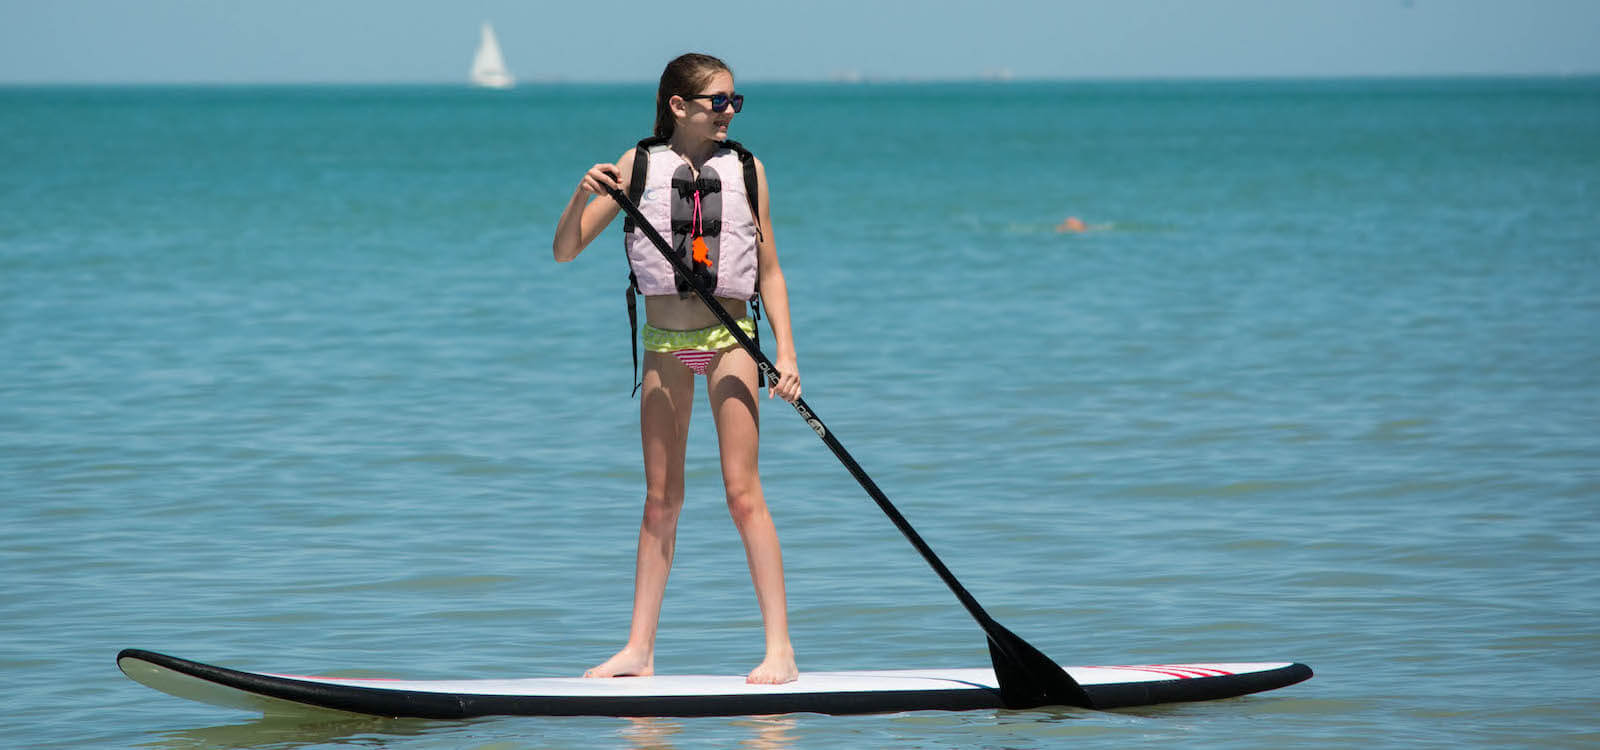 MustDo.com | Stand Up Paddleboard on Gulf of Mexico at Vanderbilt Beach, Naples, Florida, USA. Photo/Debi Pittman Wilkey